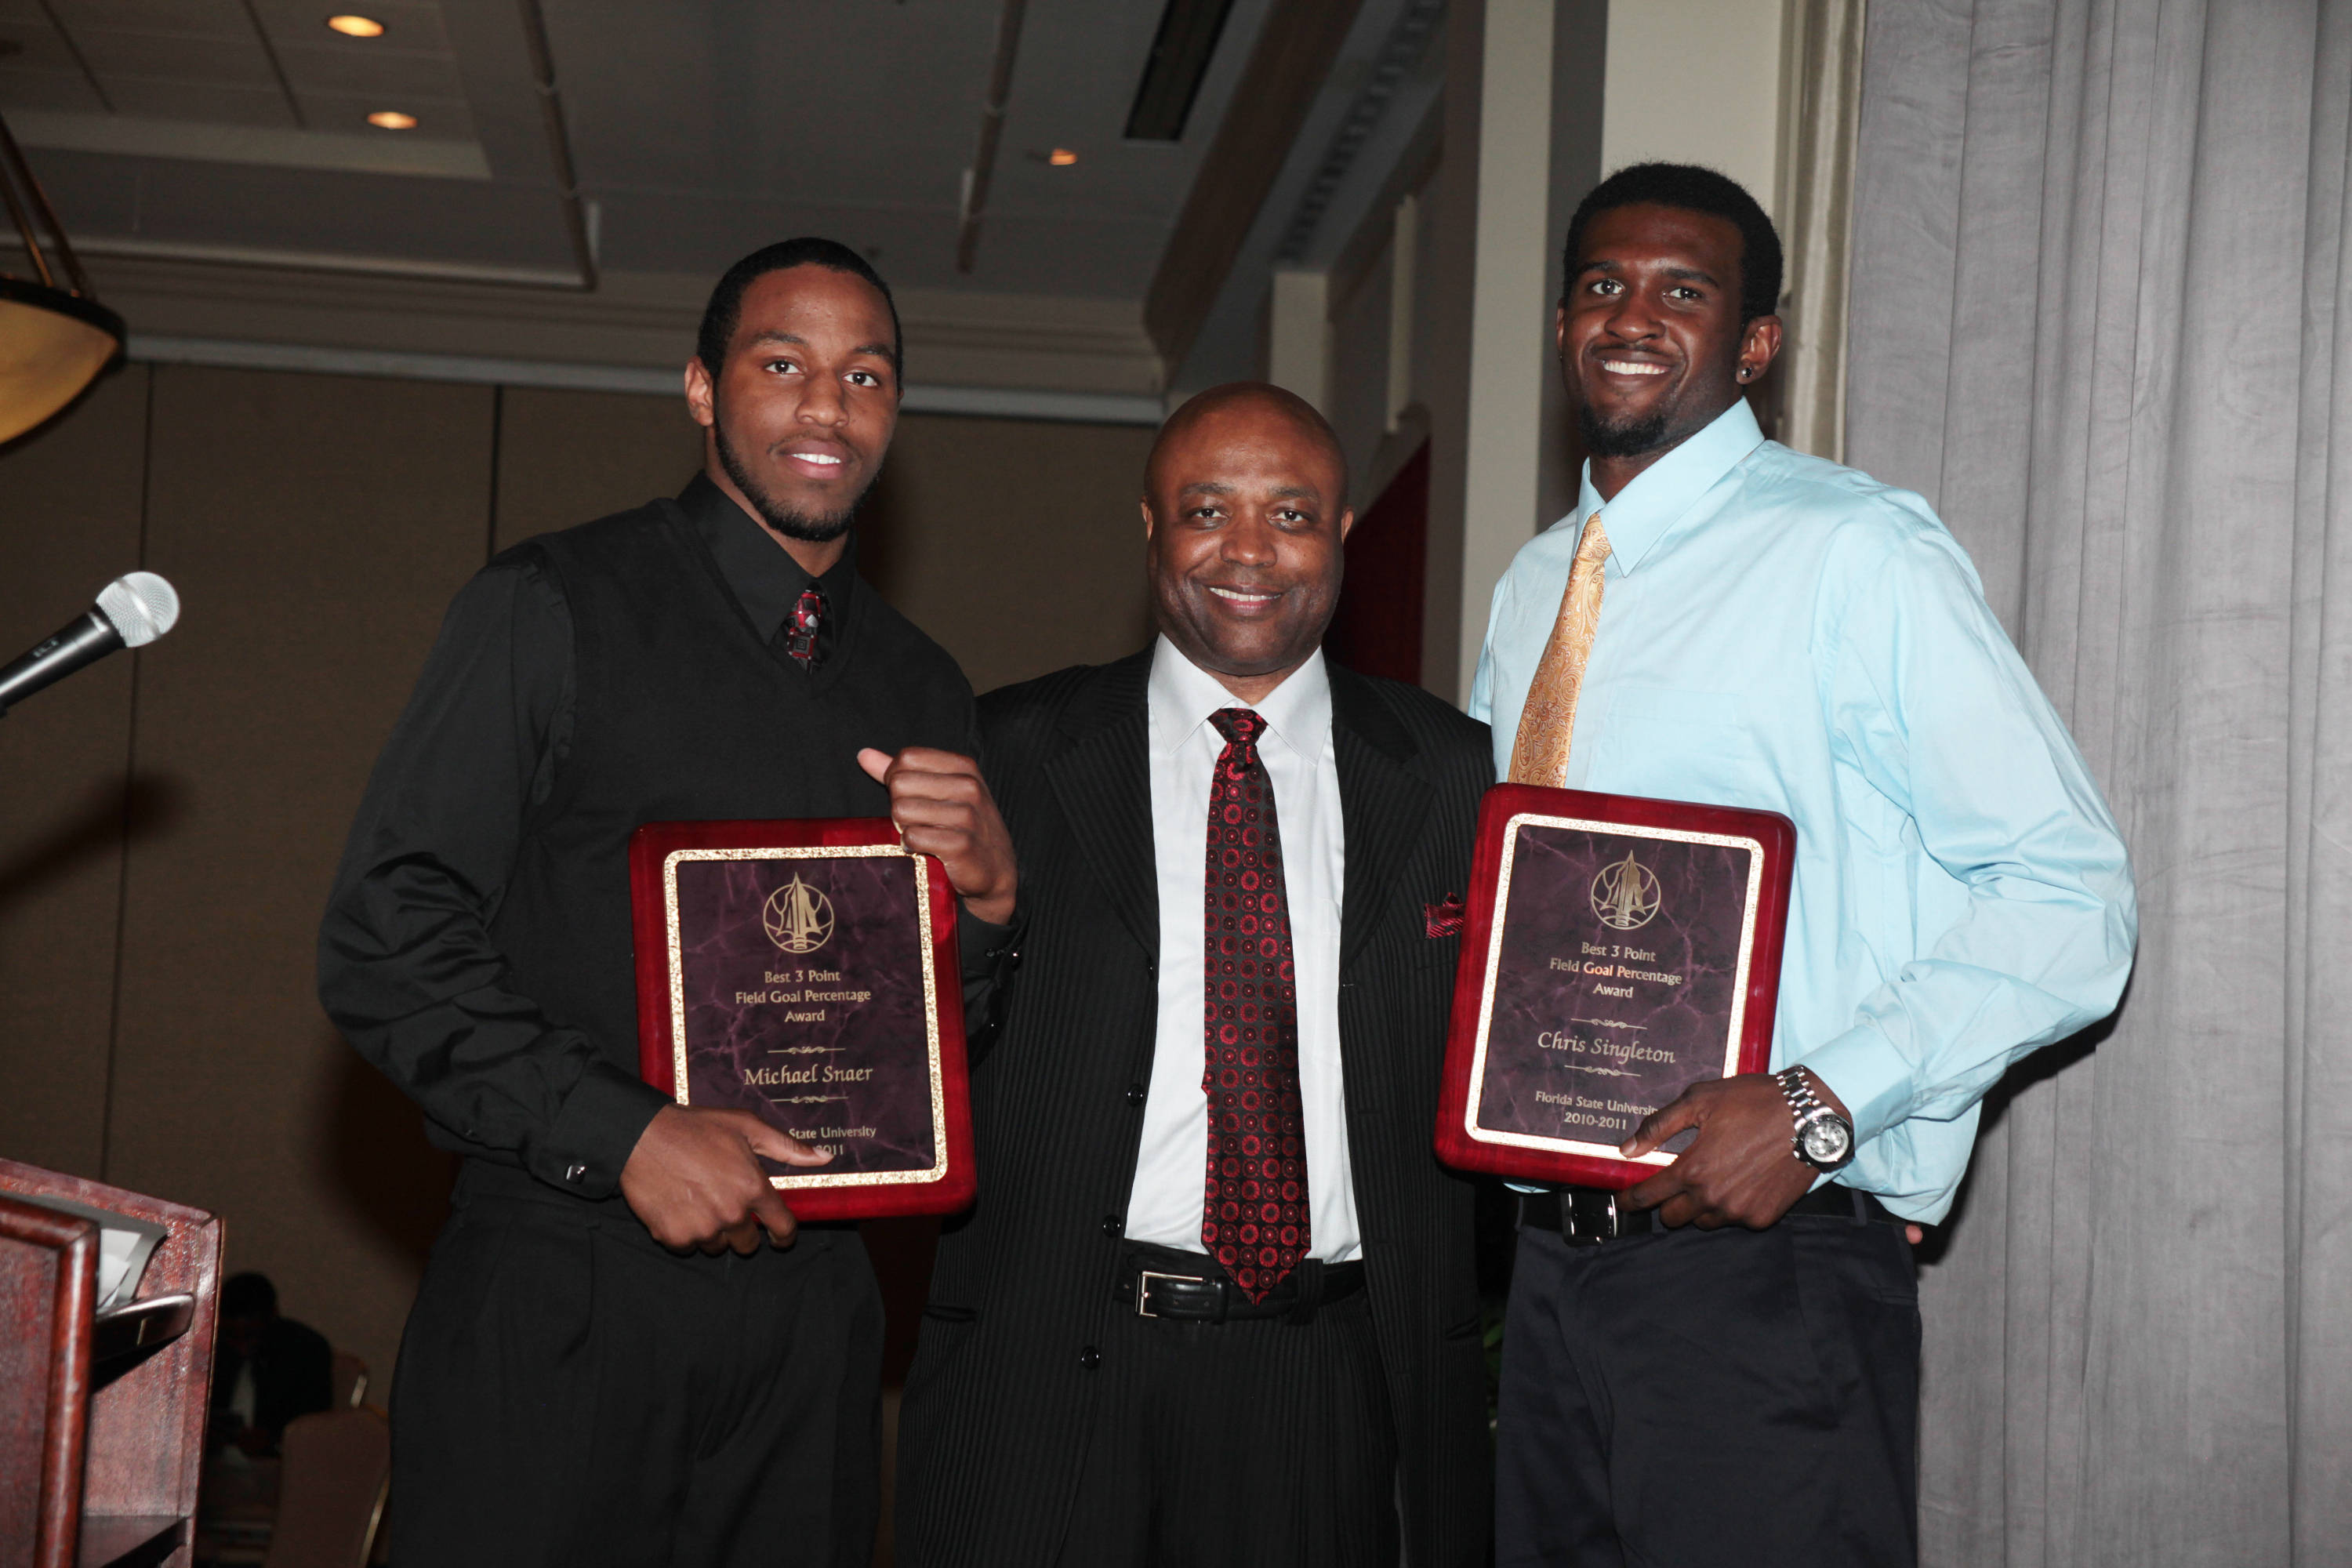 2011 Men's Basketball Banquet - Michael Snaer and Chris Singleton